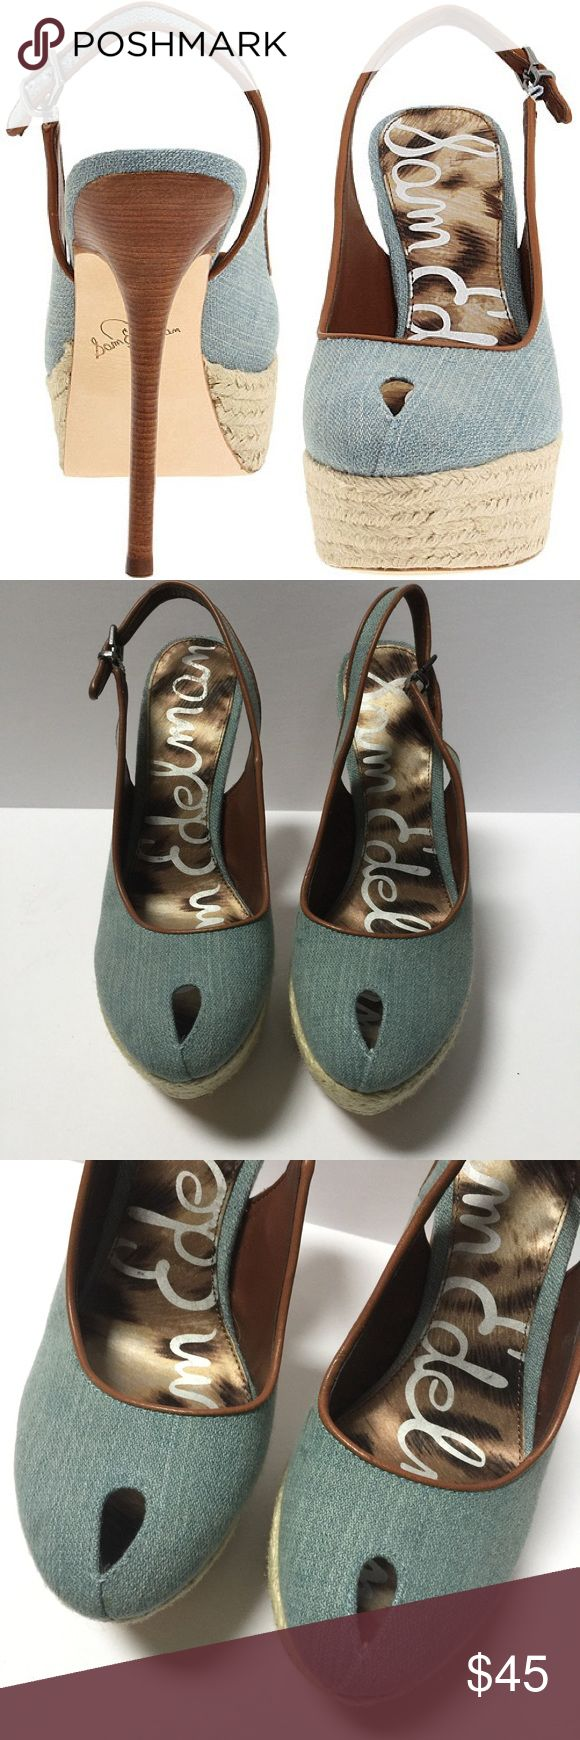 """SAM EDELMAN """"Novato"""" Blue Denim Peep Toe Platforms So fun, stylish and perfect for a night out on the town! This gorgeous platforms from Sam Edelman are done in an adorable blue denim finish with a stunning Raffia wrap around the platform. Gorgeous wood heel sets the entire look off perfectly! In excellent gently loved condition, like new! Size 7.5. 5"""" Heel, 1 1/4"""" platform- comparable to a 3 3/4"""" Heel! Sam Edelman Shoes Platforms"""